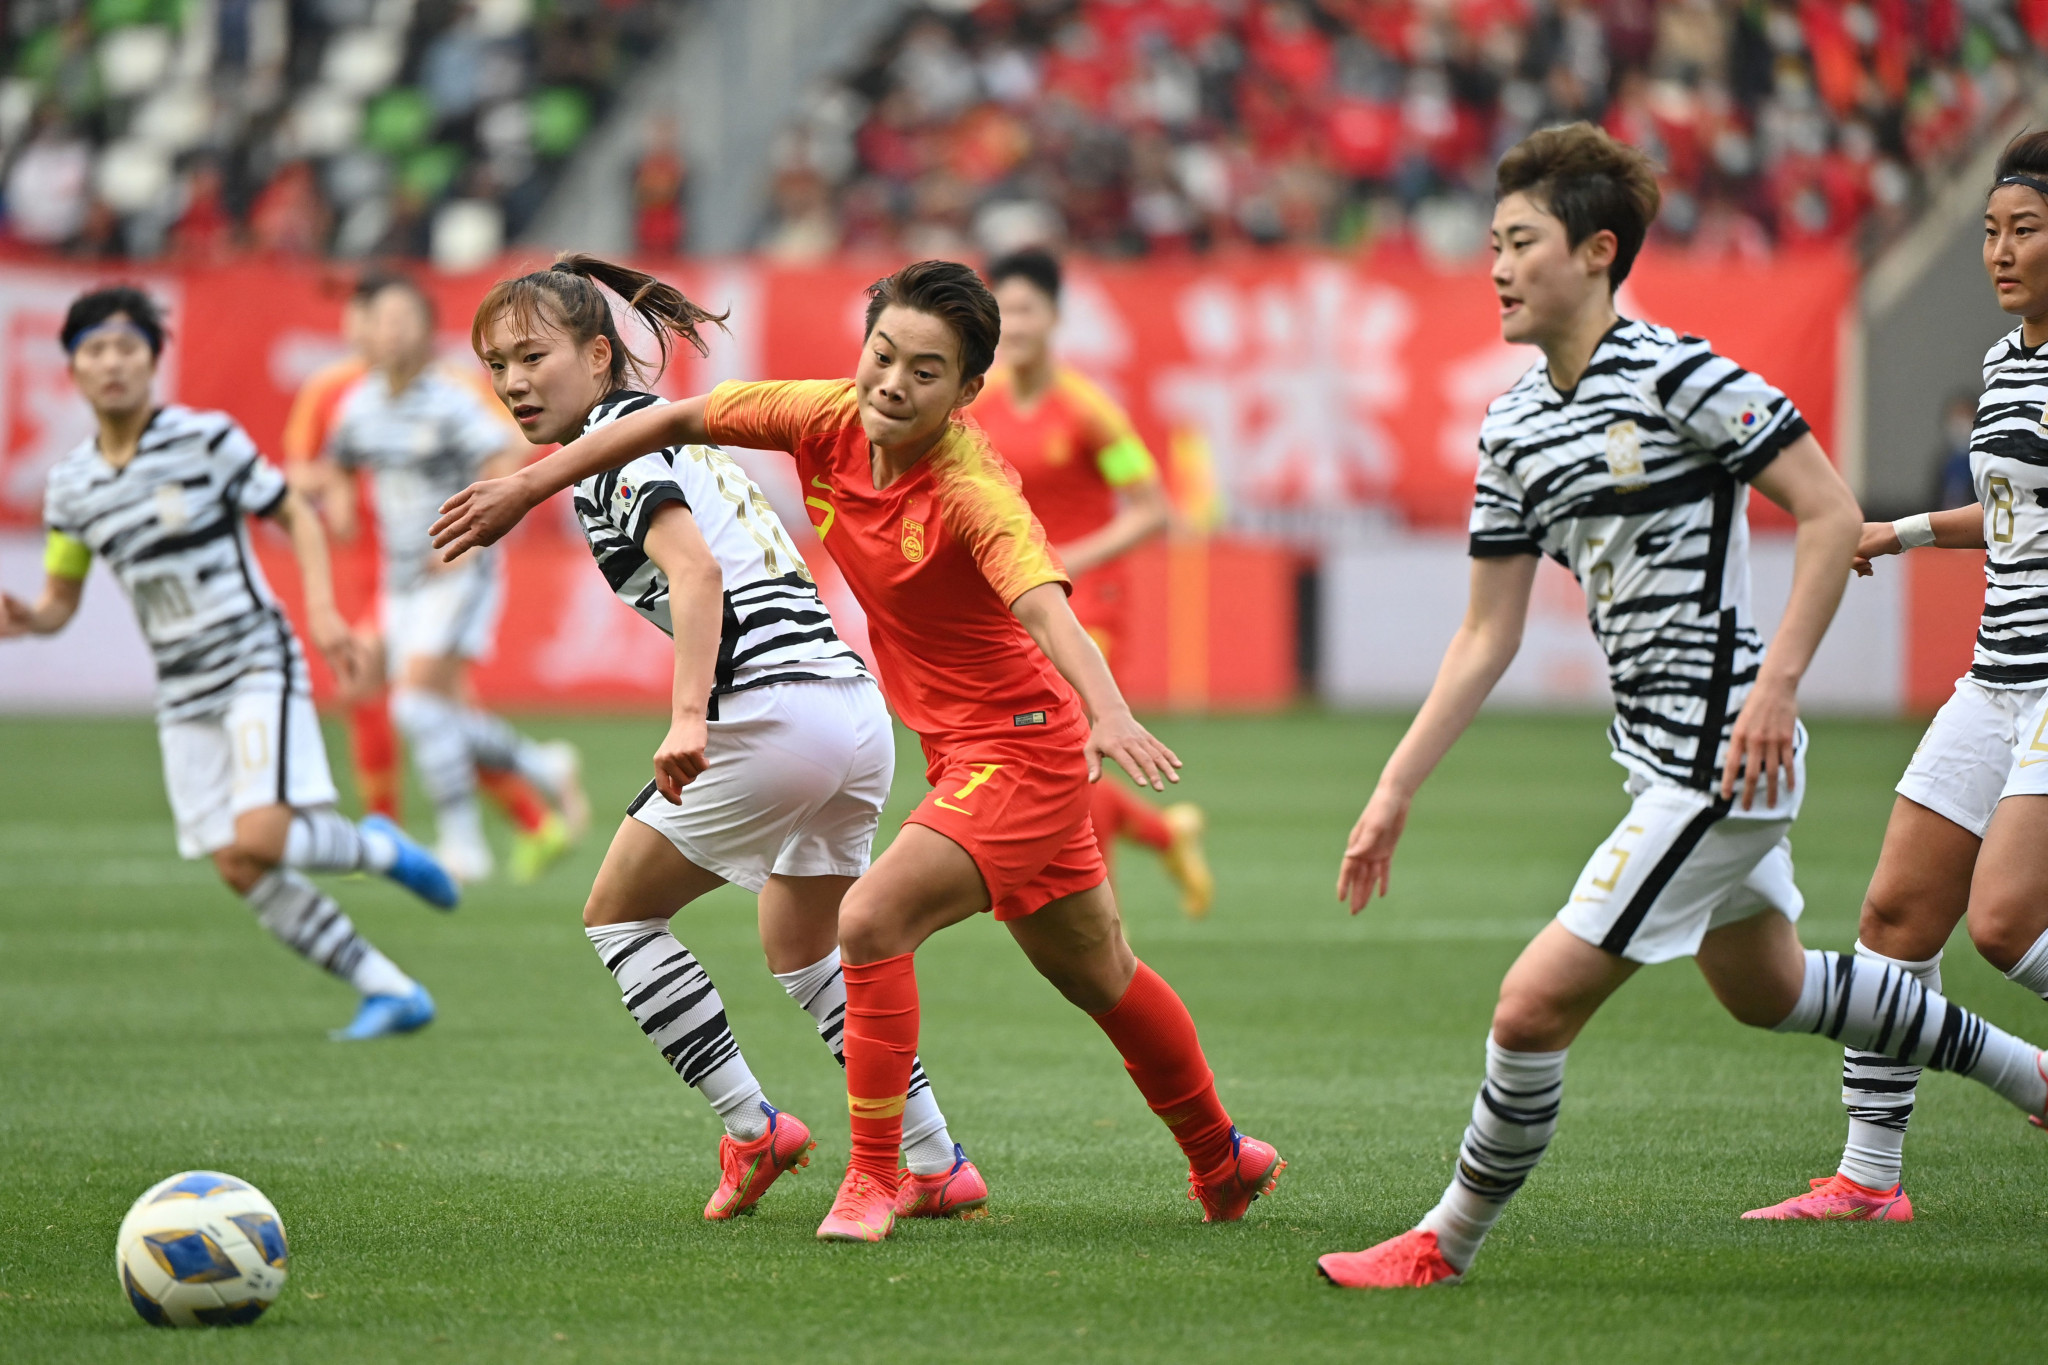 A 2-2 draw in Suzhou was enough to see China reach the Tokyo 2020 Olympics women's football tournament ©Getty Images